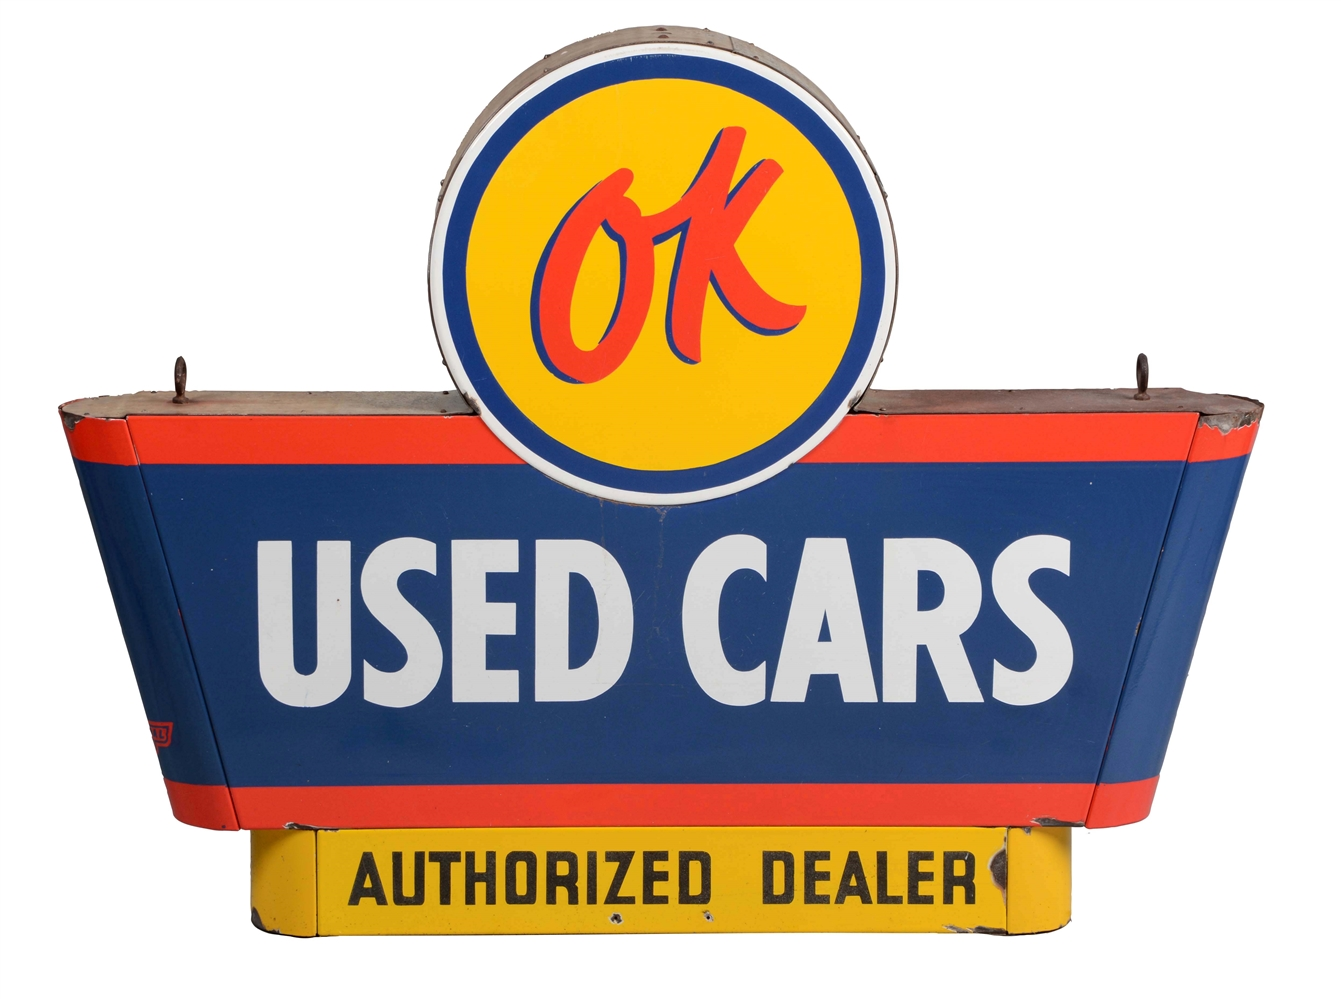 OK Used Cars Authorized Dealer Porcelain Sign on Original Can.